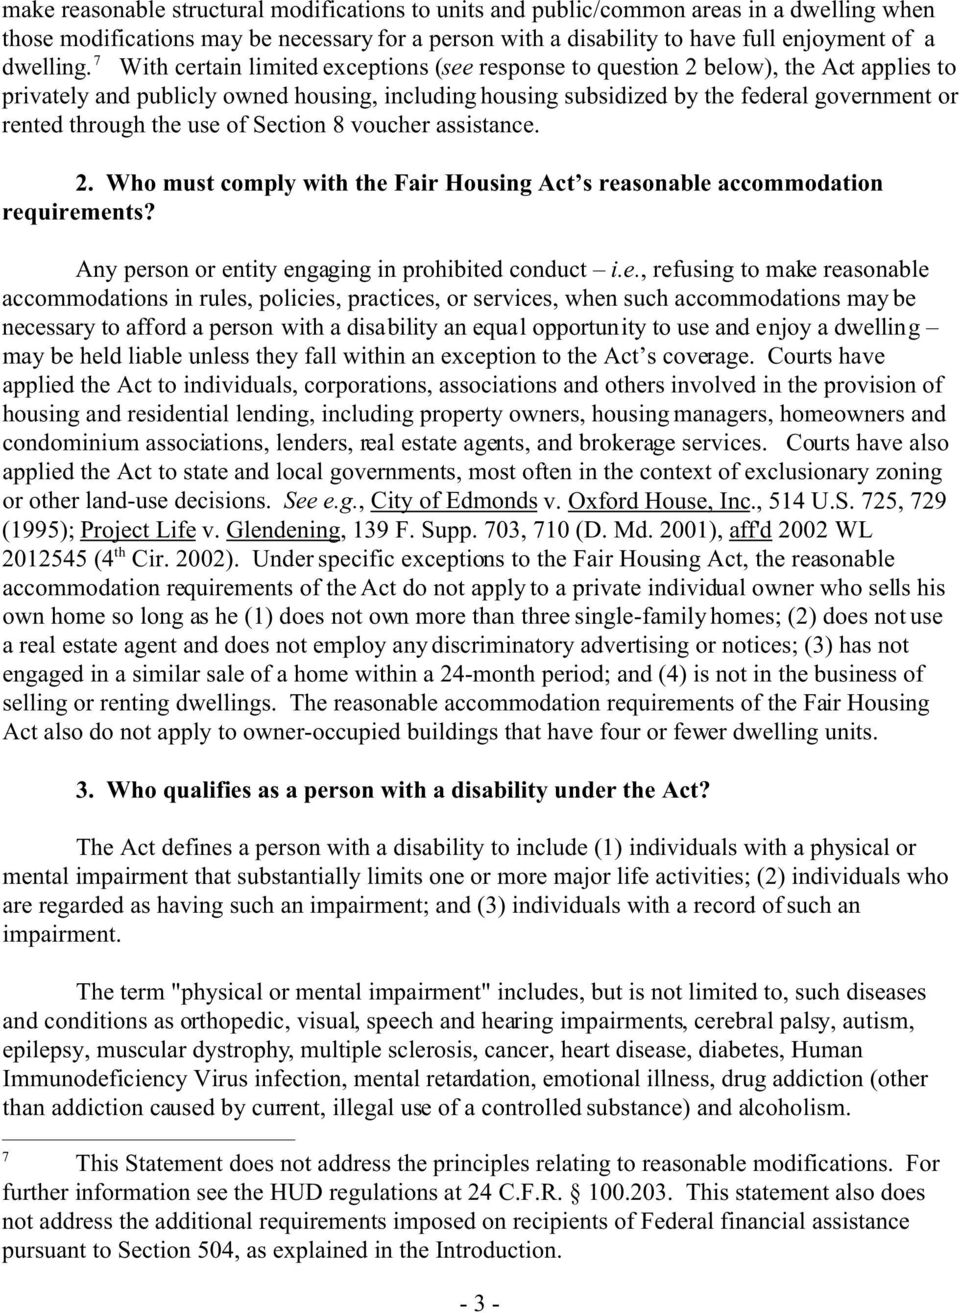 the use of Section 8 voucher assistance. 2. Who must comply with the Fair Housing Act s reasonable accommodation requirements? Any person or entity engaging in prohibited conduct i.e., refusing to